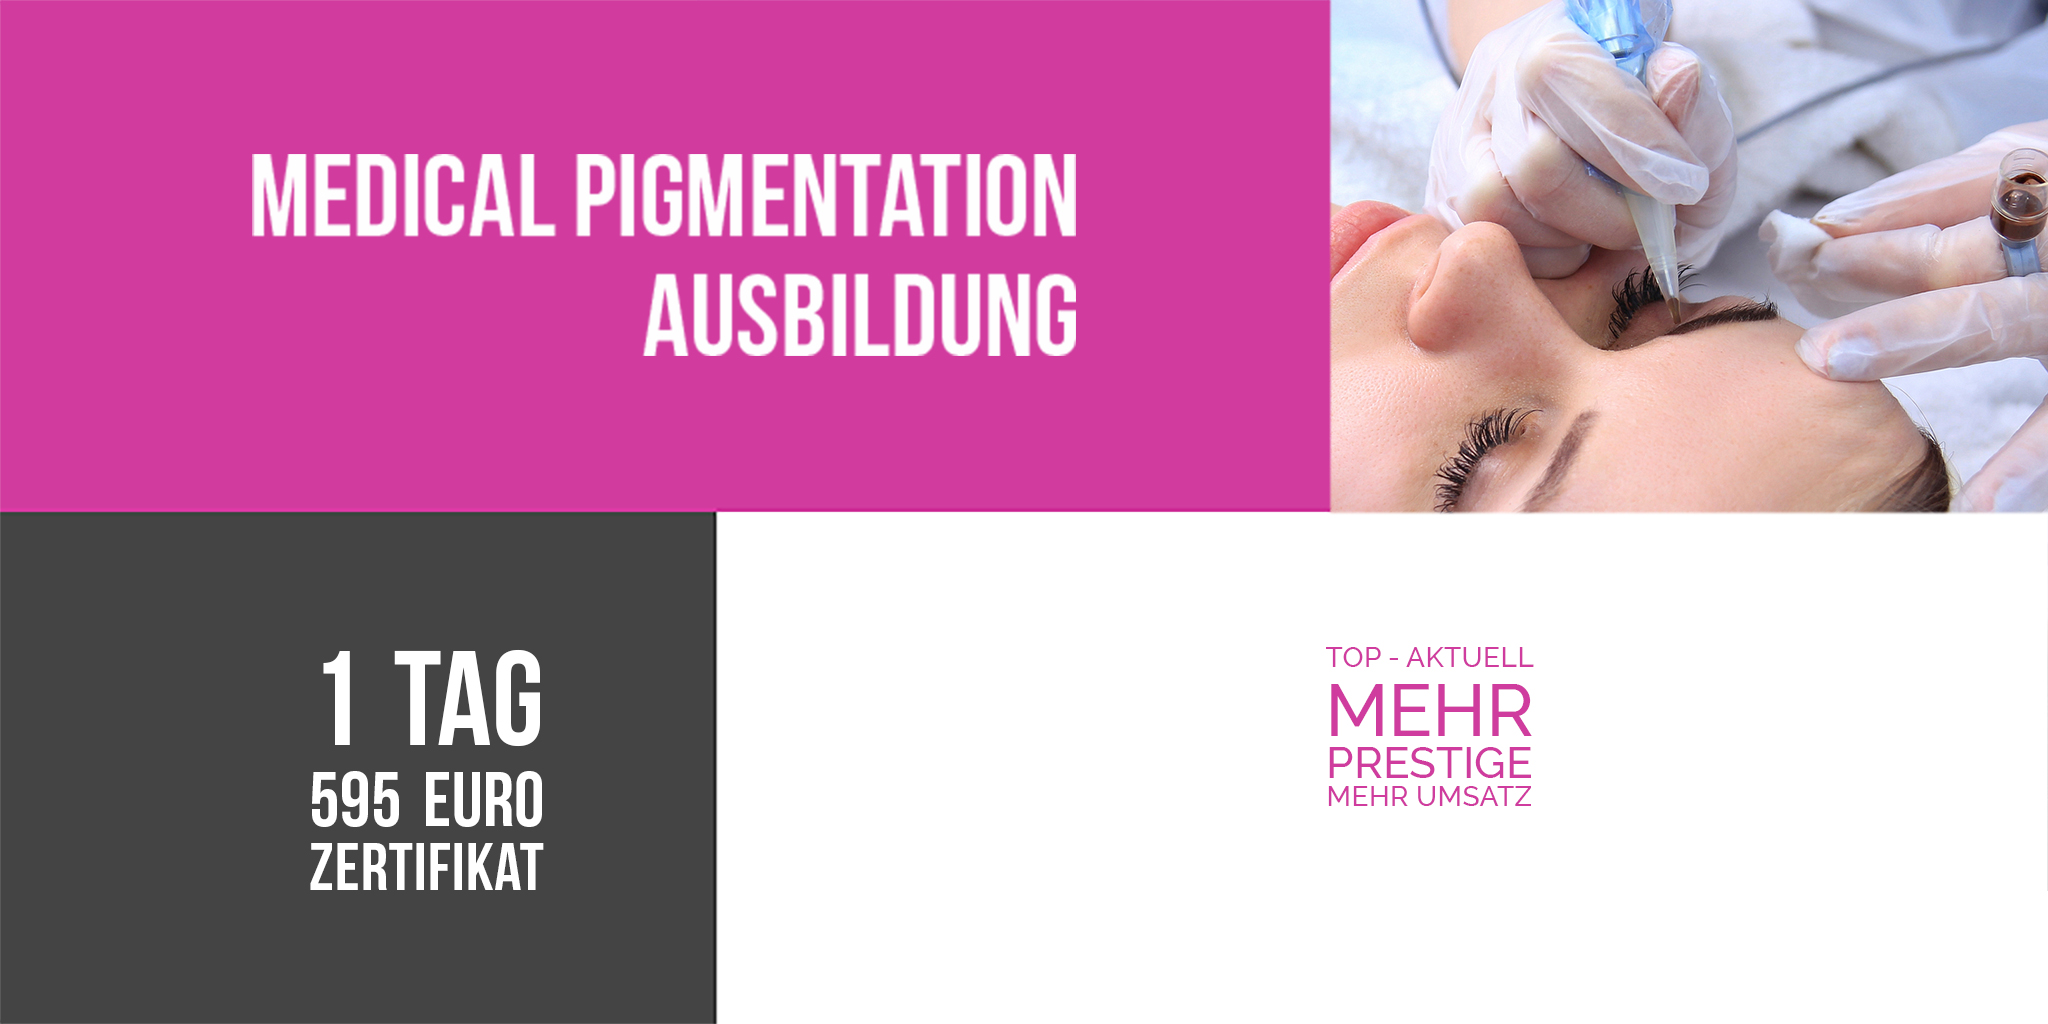 Medical Pigmentation Ausbildung Berlin